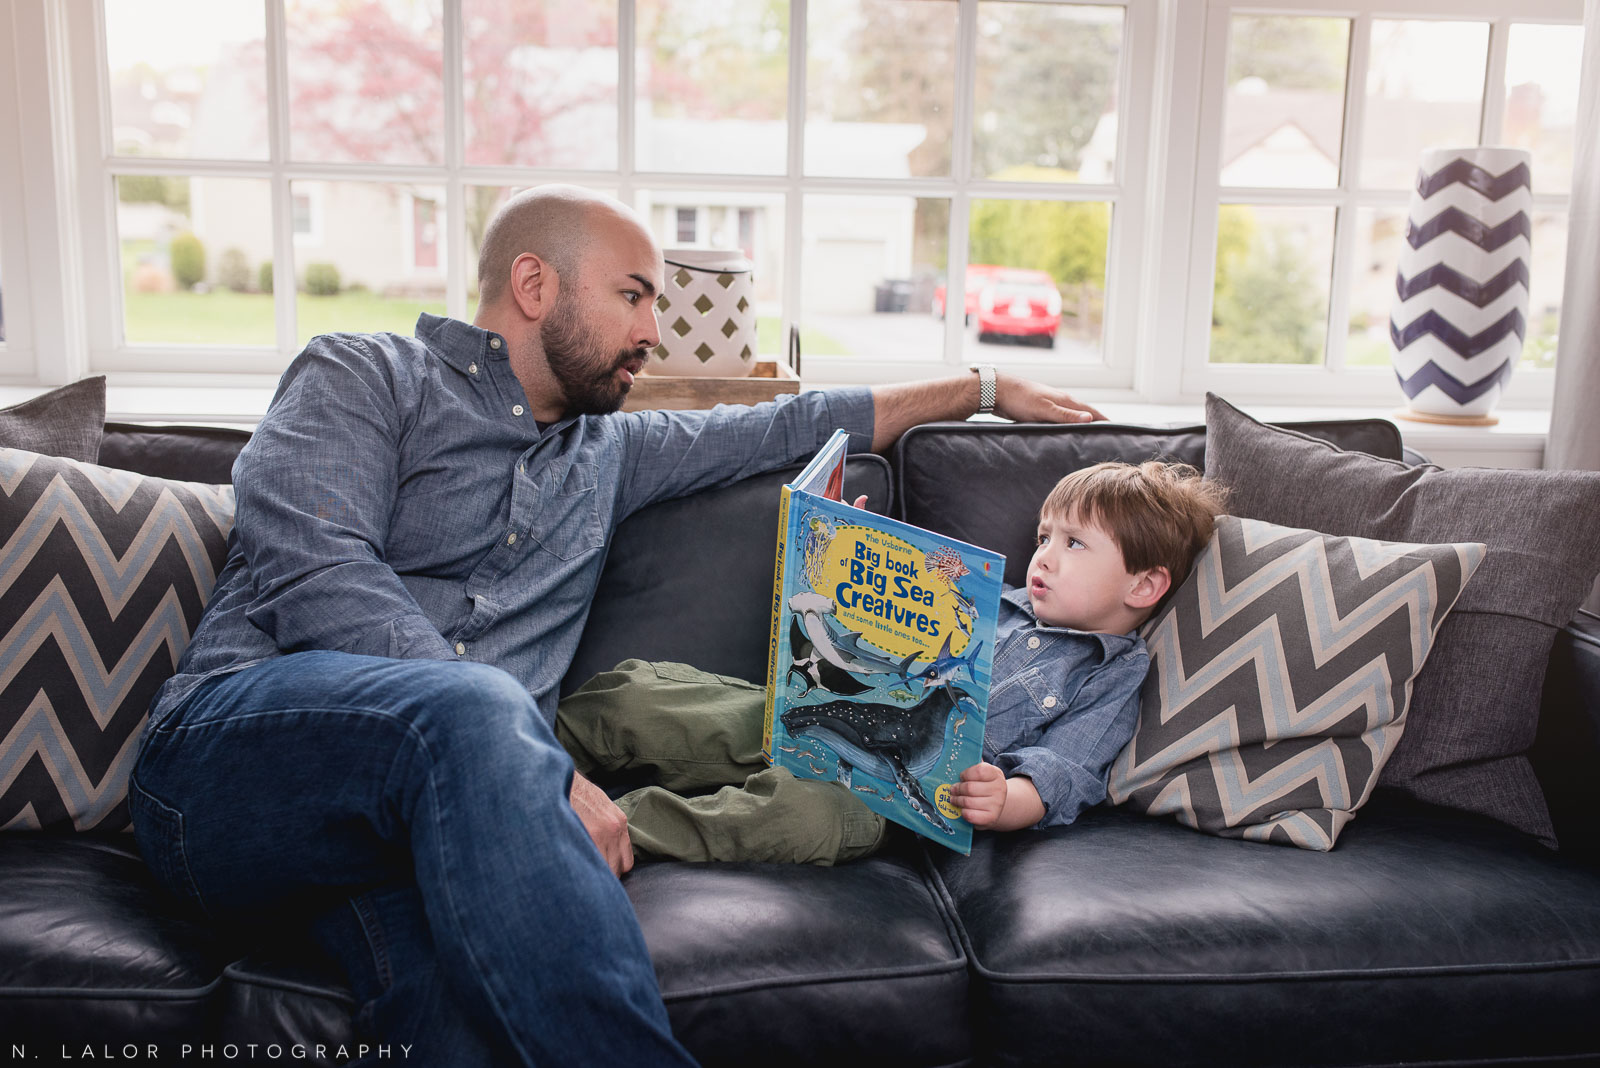 Father and son, on the couch. Lifestyle family session by N. Lalor Photography.